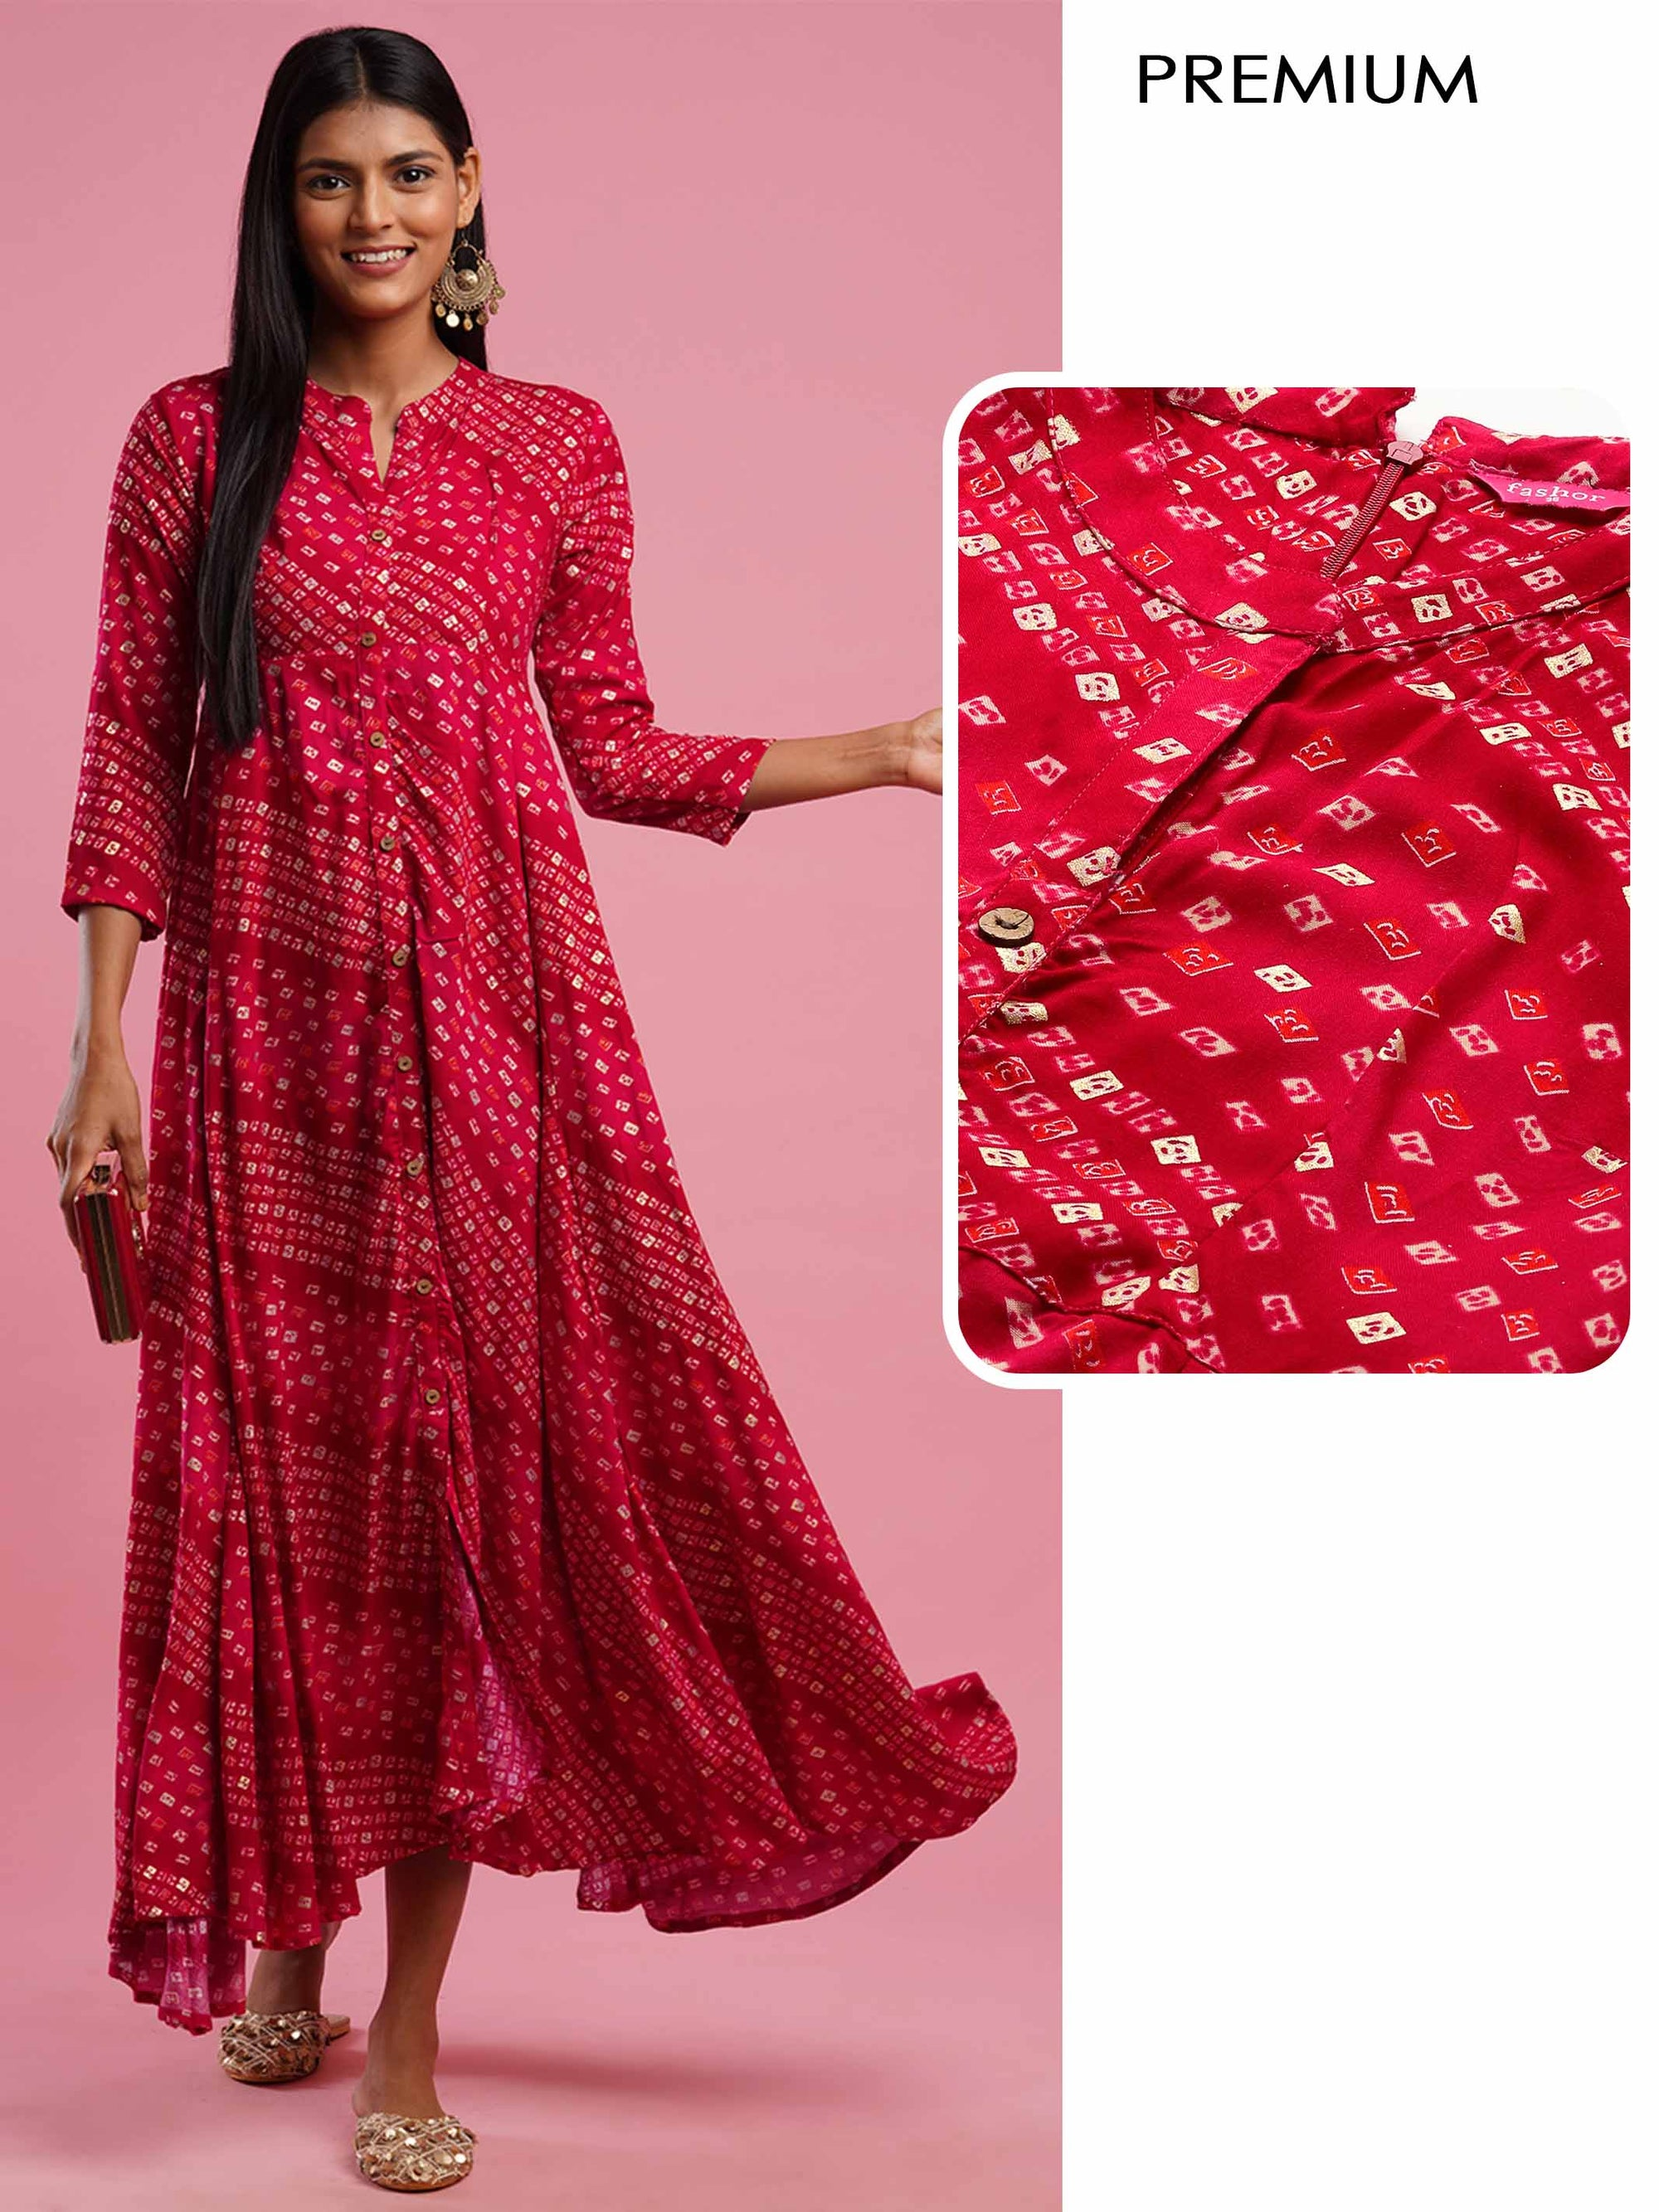 Bandhani Foil Printed Flared Maxi Dress - Cherry Red